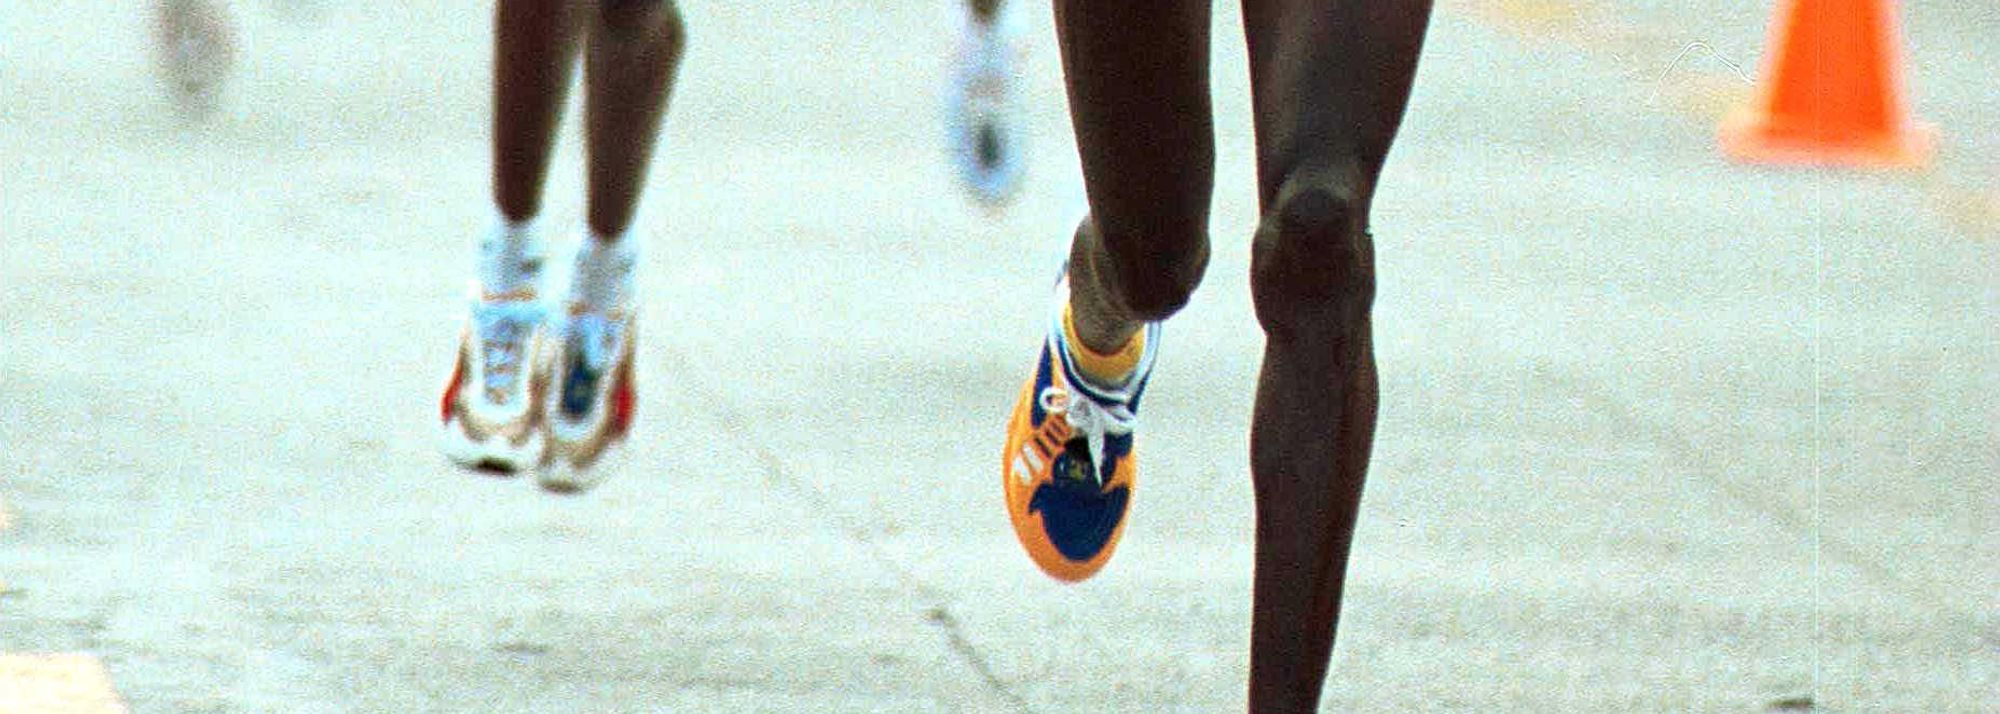 In a masterful display of strength and tactics, World Half Marathon Champion, Paul Tergat of Kenya became the first man ever to successfully defend his title